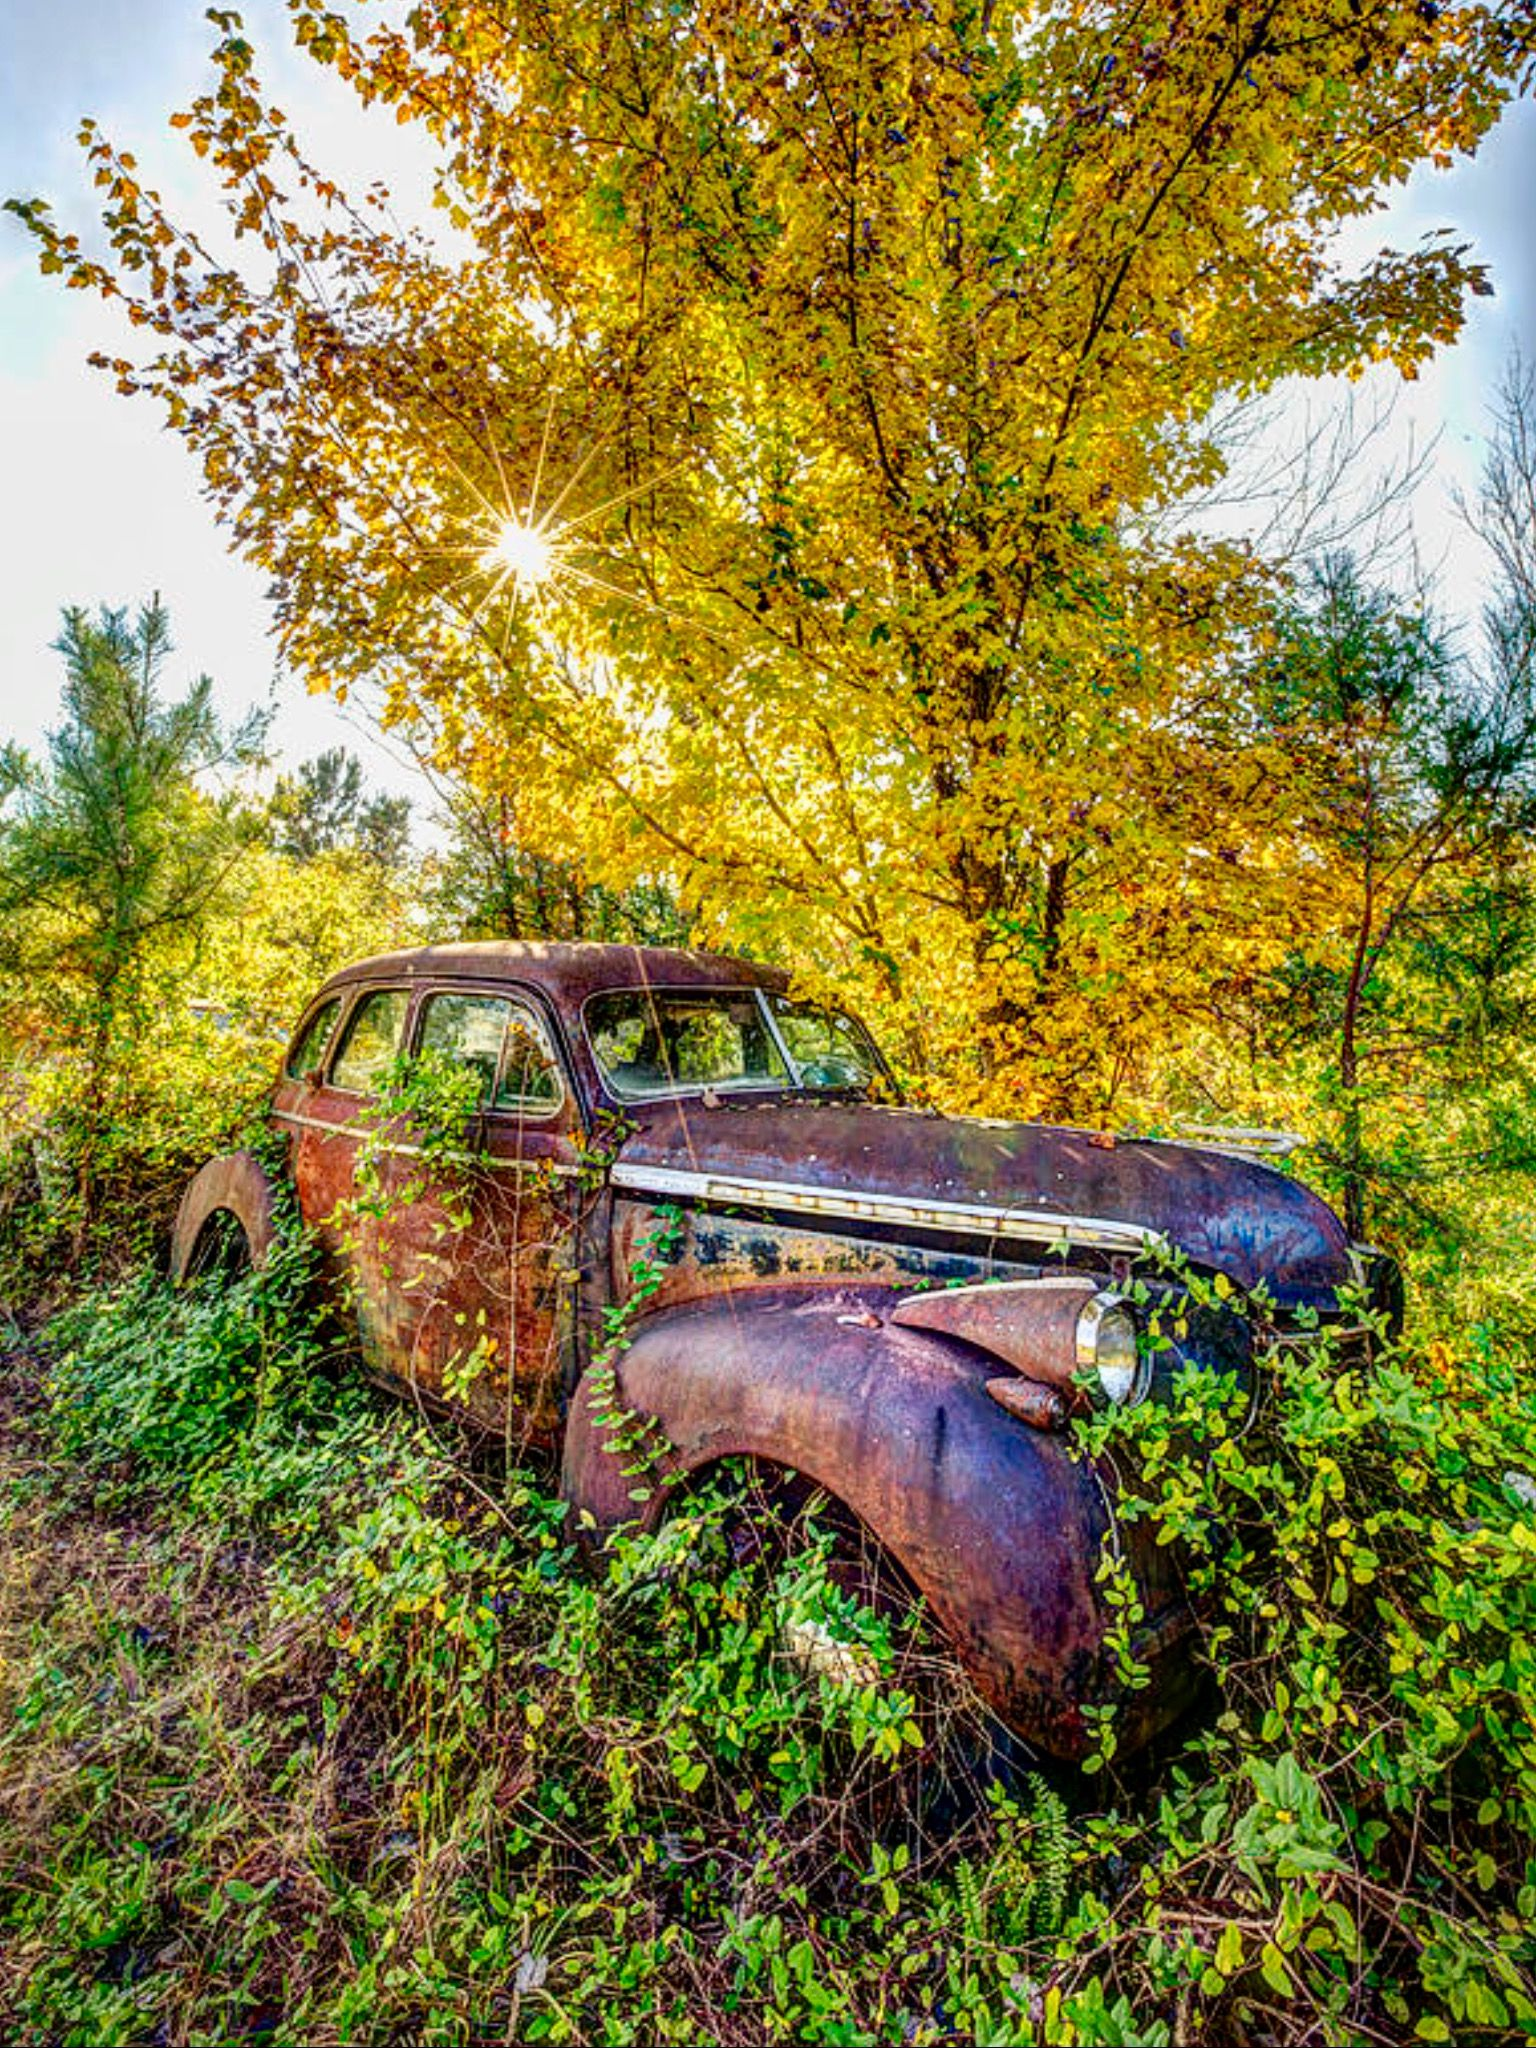 Vintage Car Is A Photograph By Debra And Dave Vanderlaan What A Treasure This Old Rusty Vintage Car Sits Under The Dawn Sun Old Cars Dream Cars Bmw Abandoned